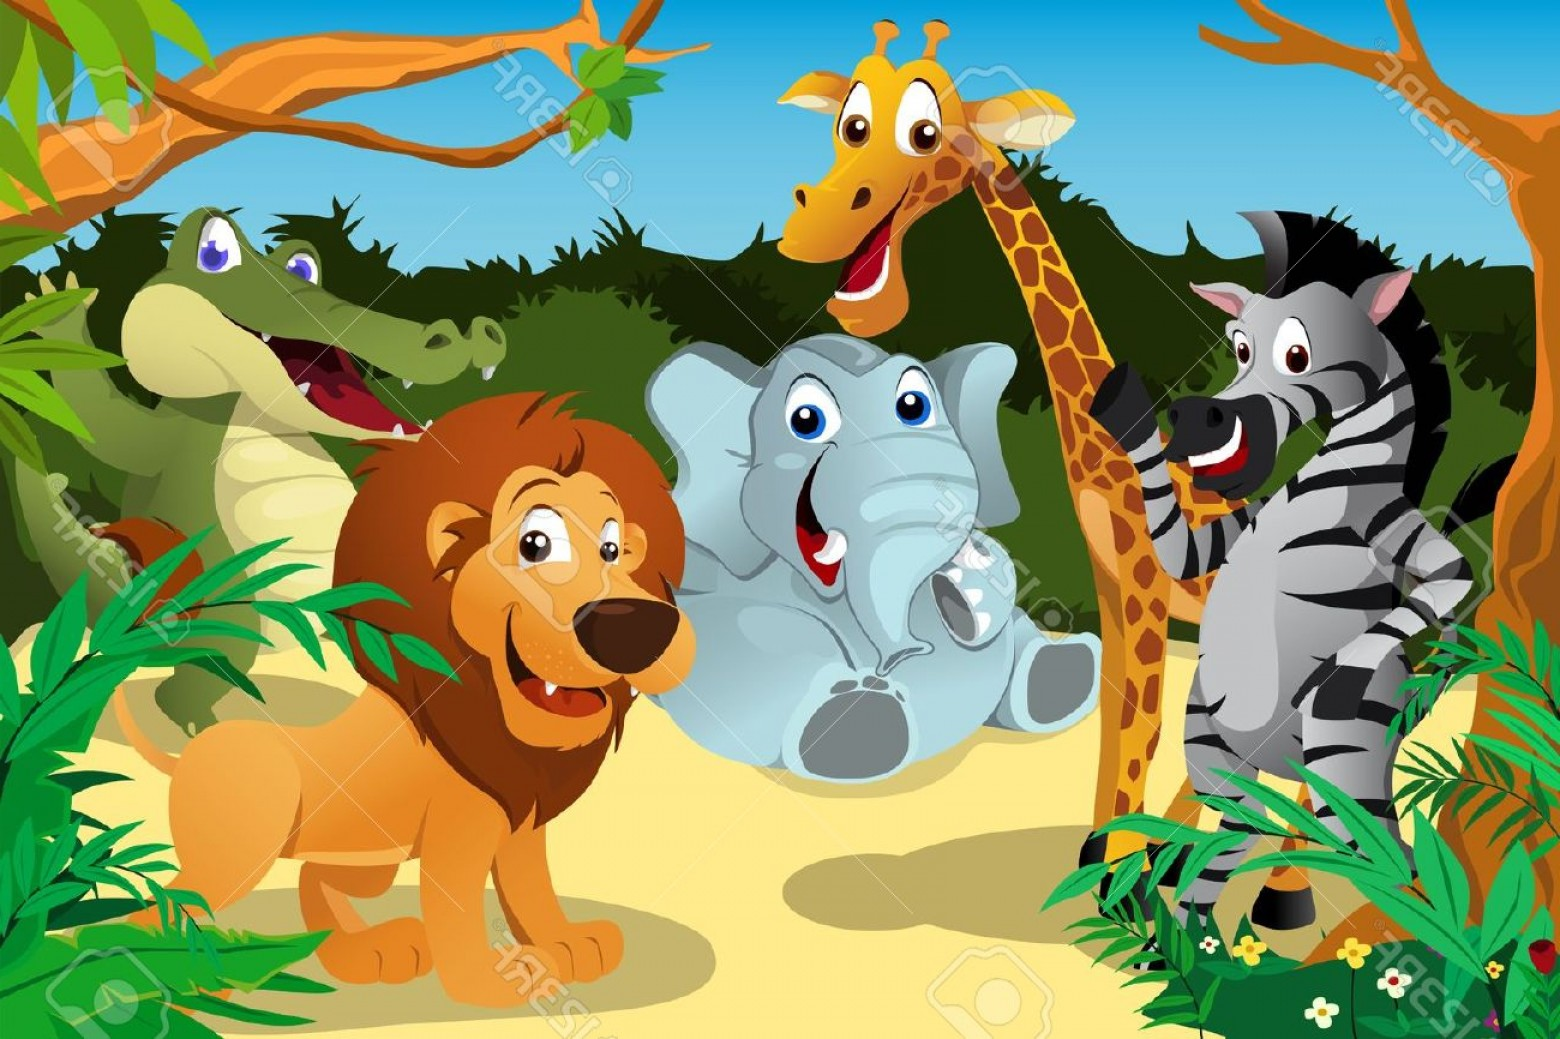 Jungle Animals Clip Art Vector: Photoa Vector Illustration Of A Group Of Wild African Animals In The Jungle